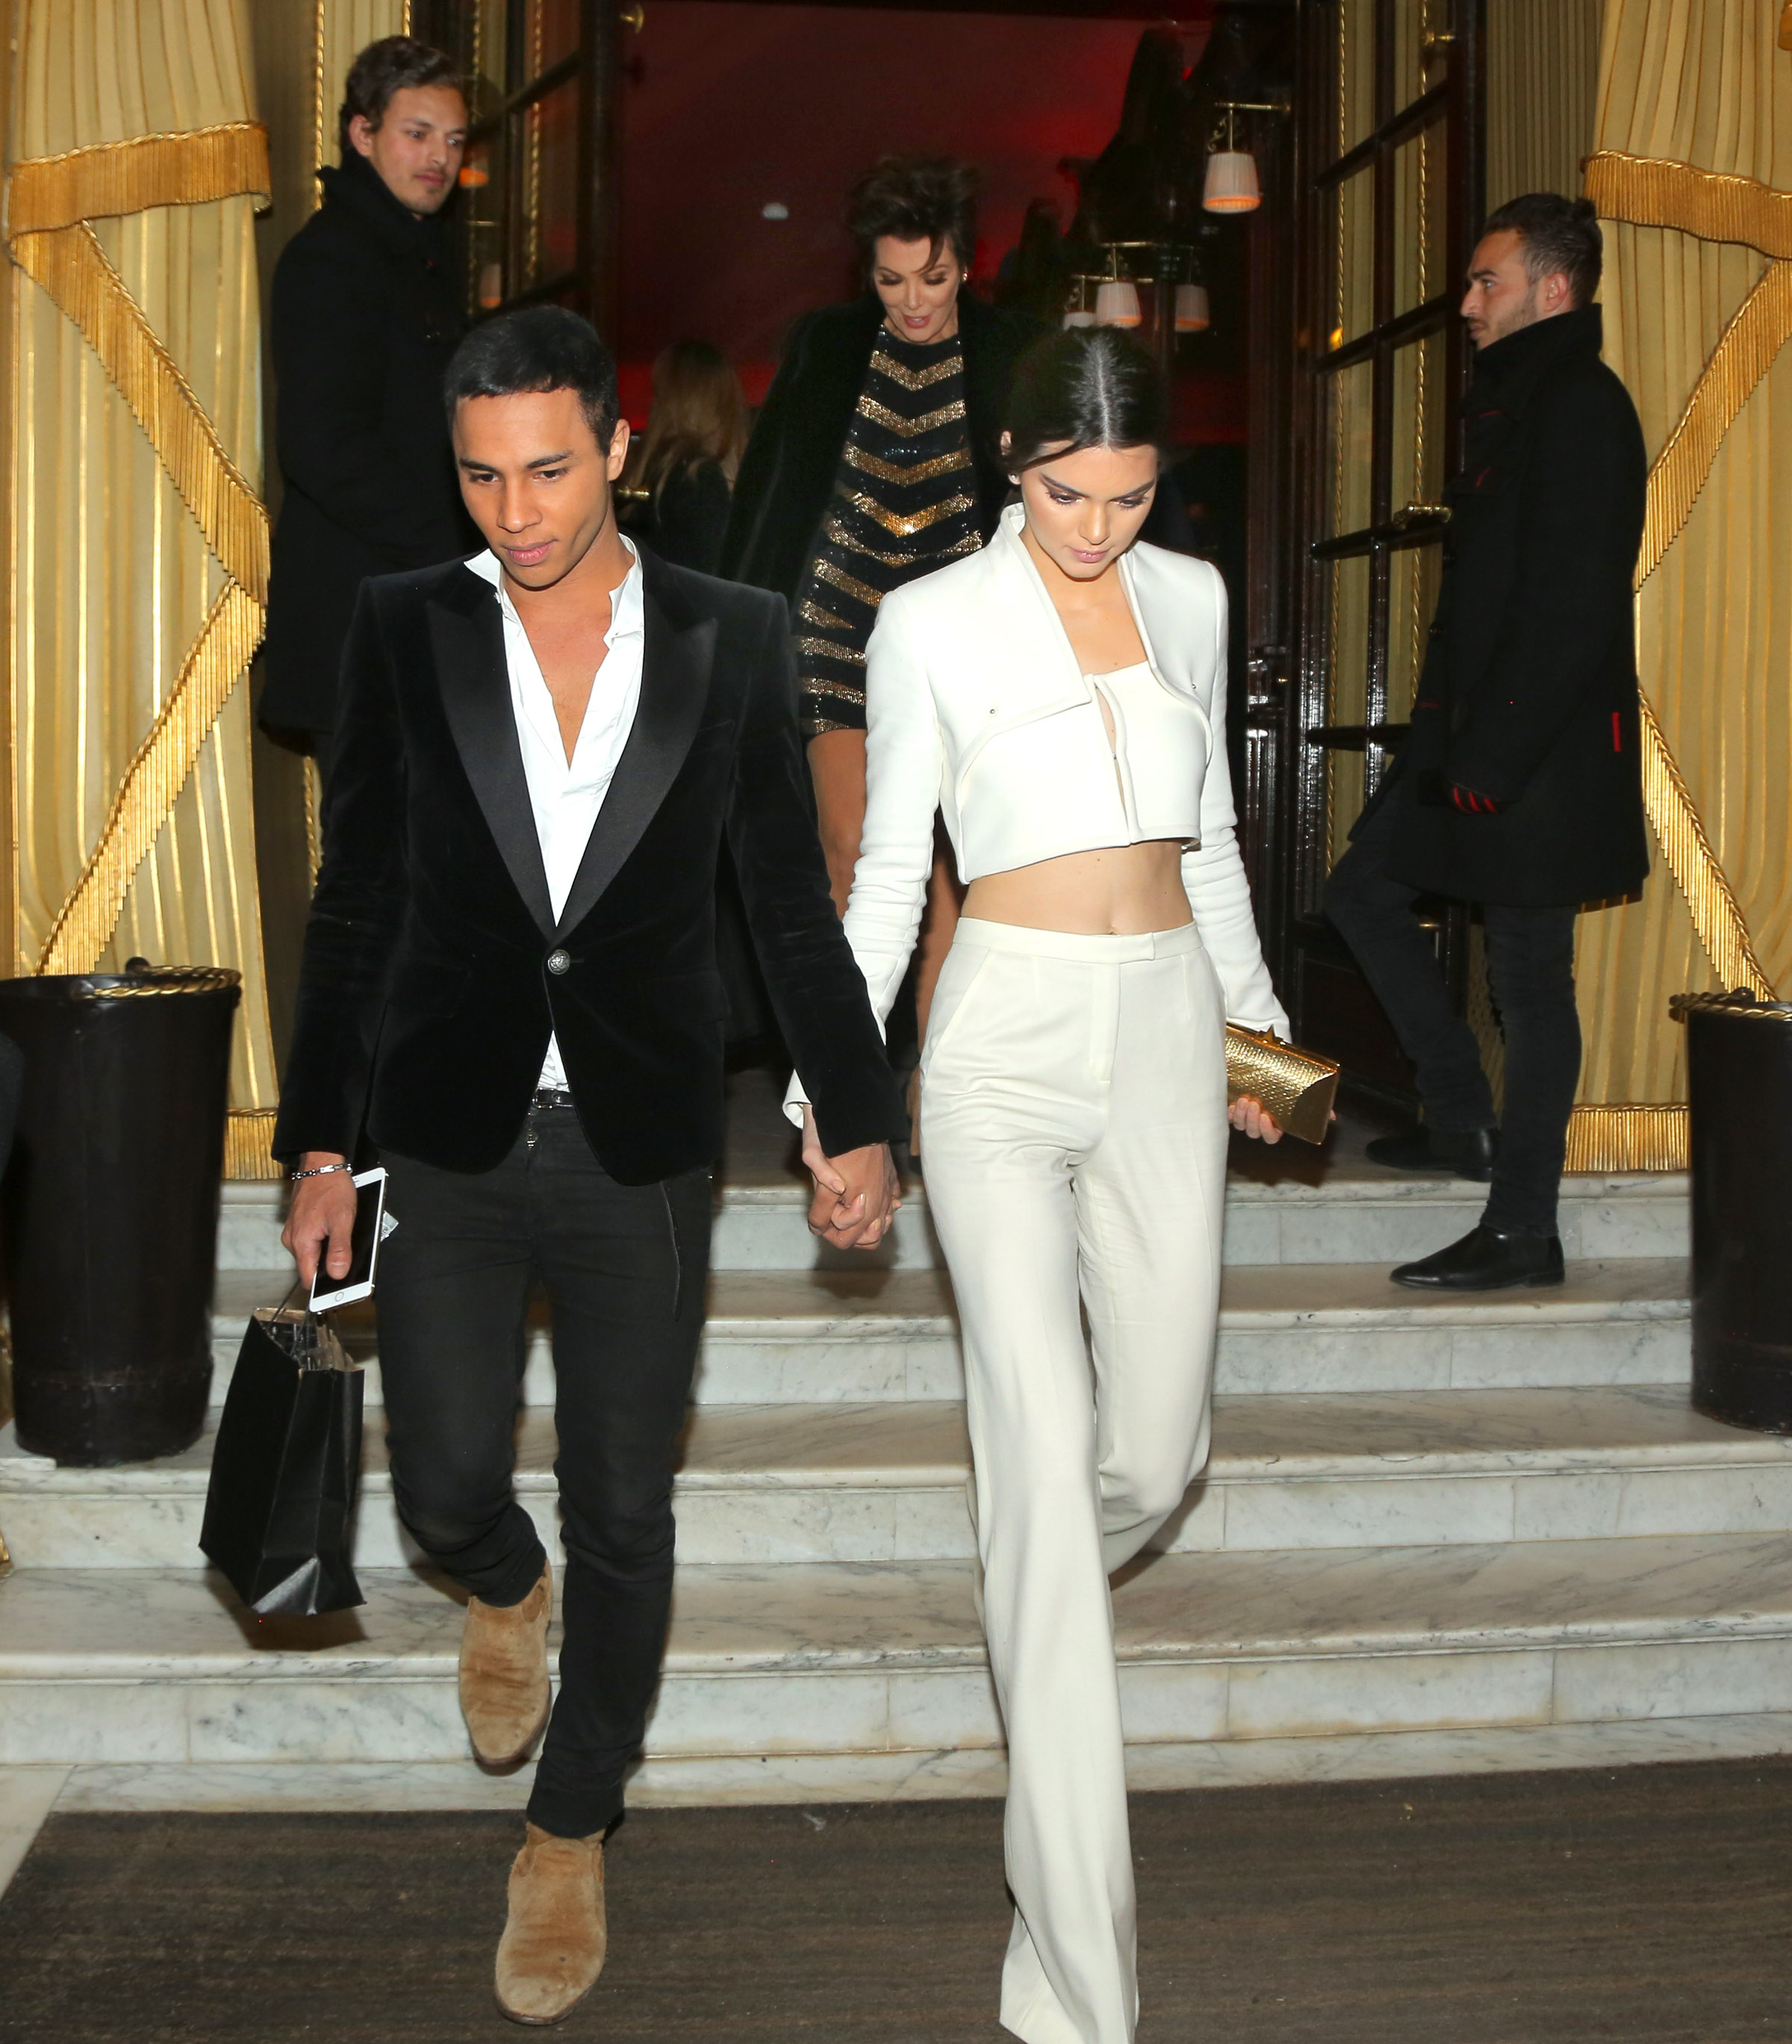 Kendall Jenner give a kiss on cheek and holds hands with desginer Oliver Rousteing of Balmain Paris as Kris Jenner smiles in delight